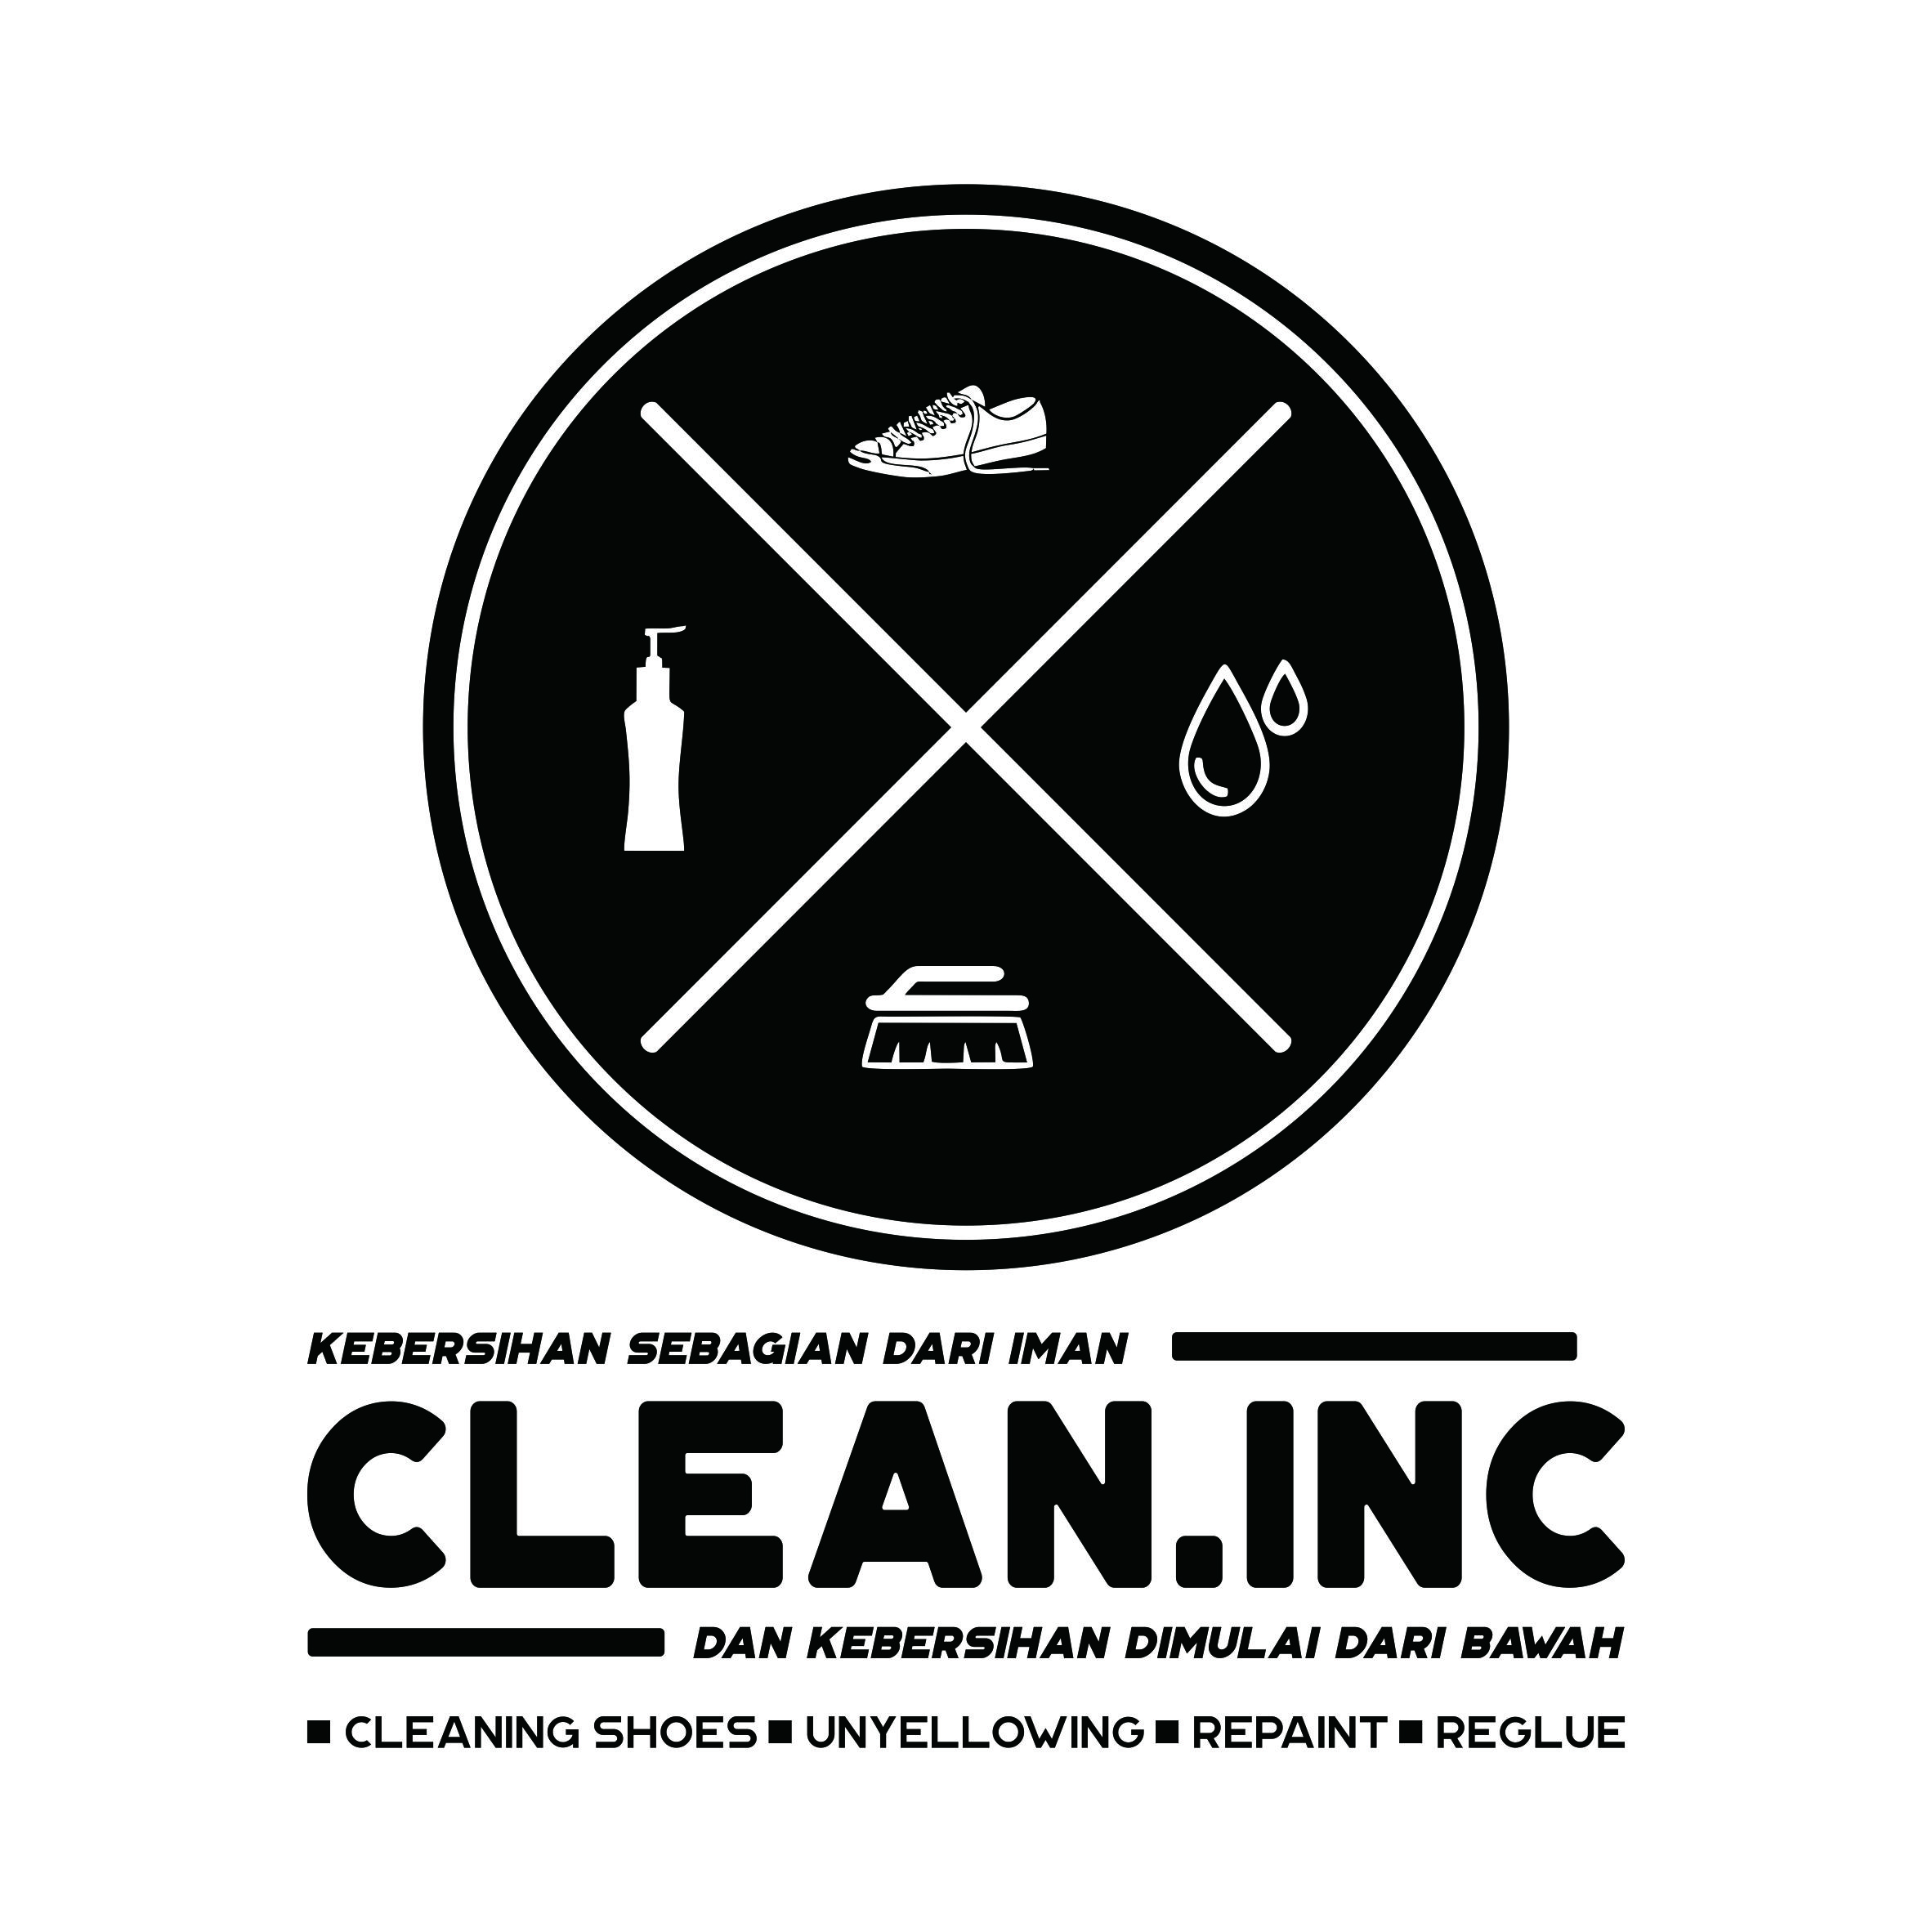 Clean.Inc Shoes Cleaner Artwork logo by Yogatama yalesena